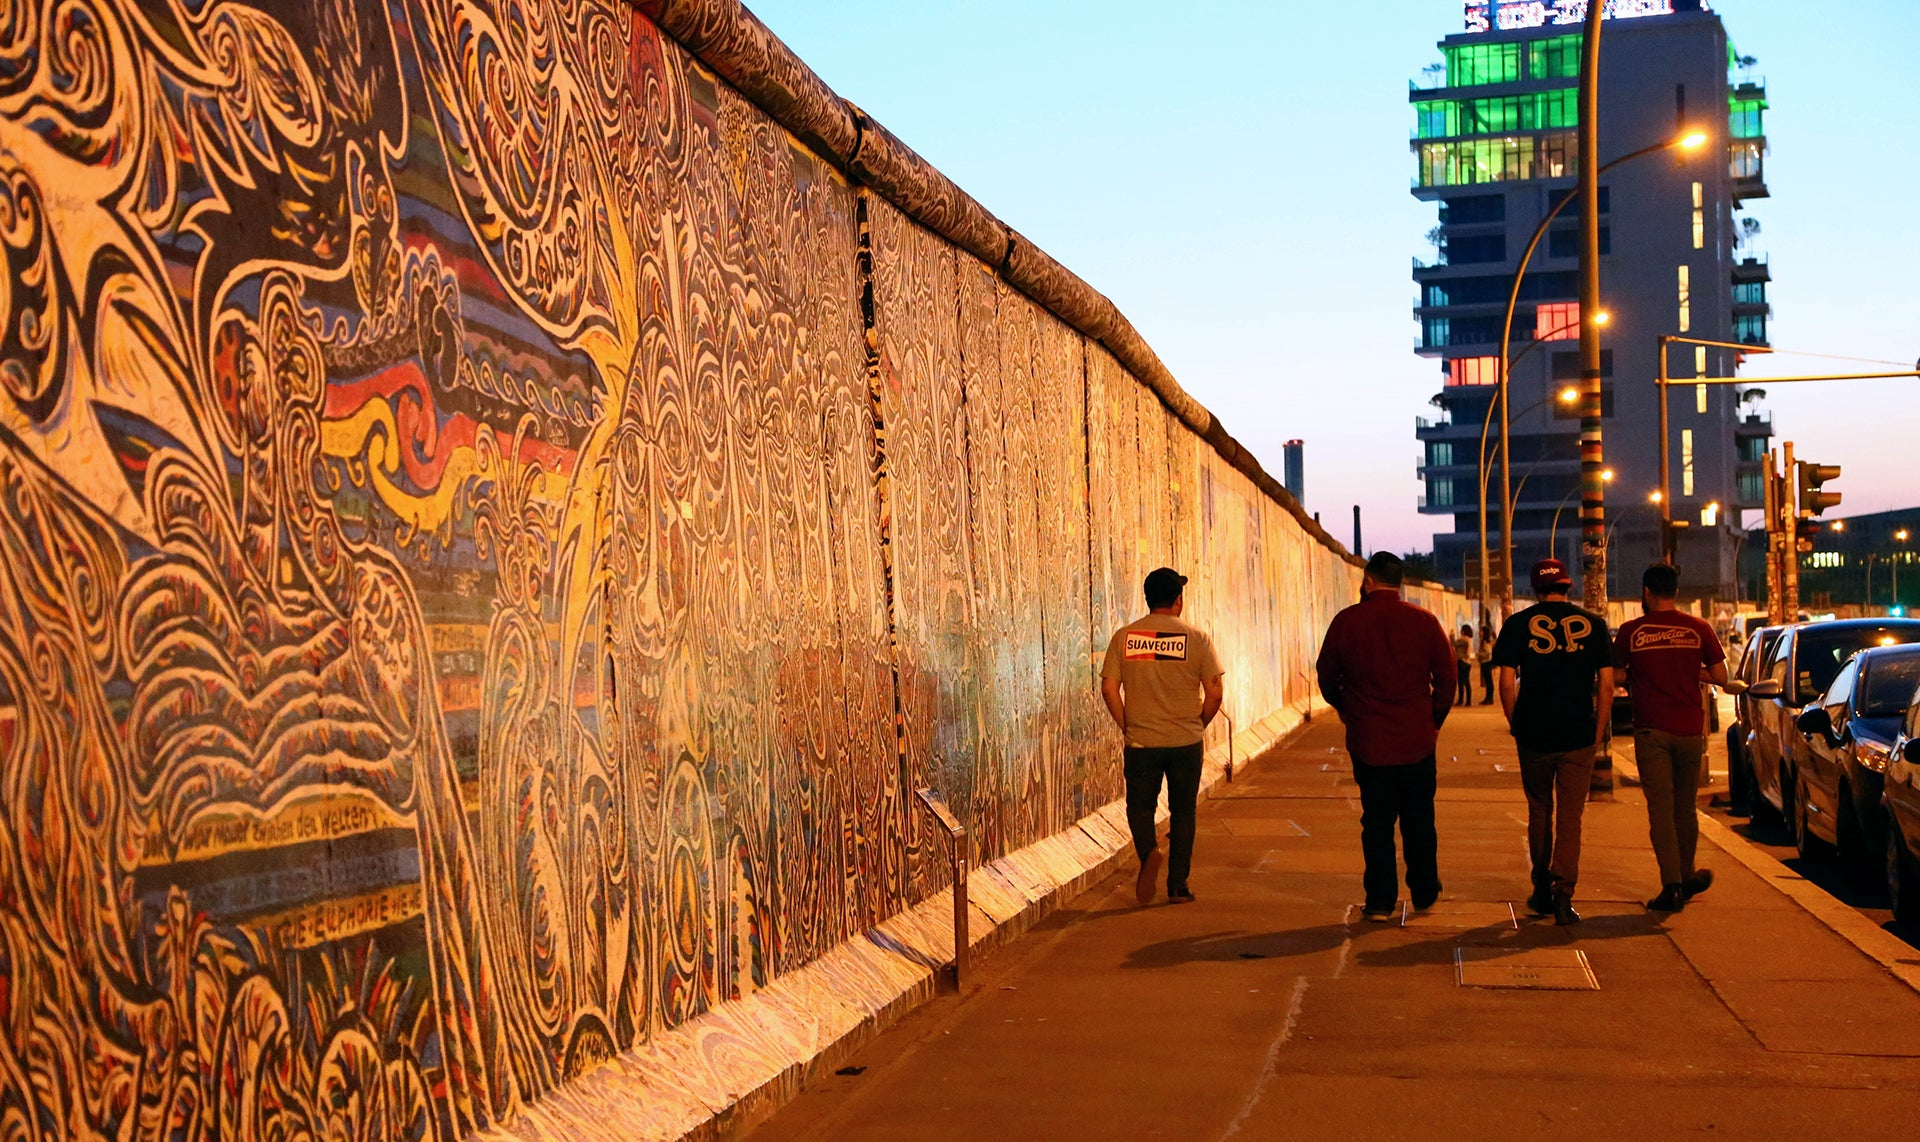 Suavecito Pomade Walking by The Berlin Wall